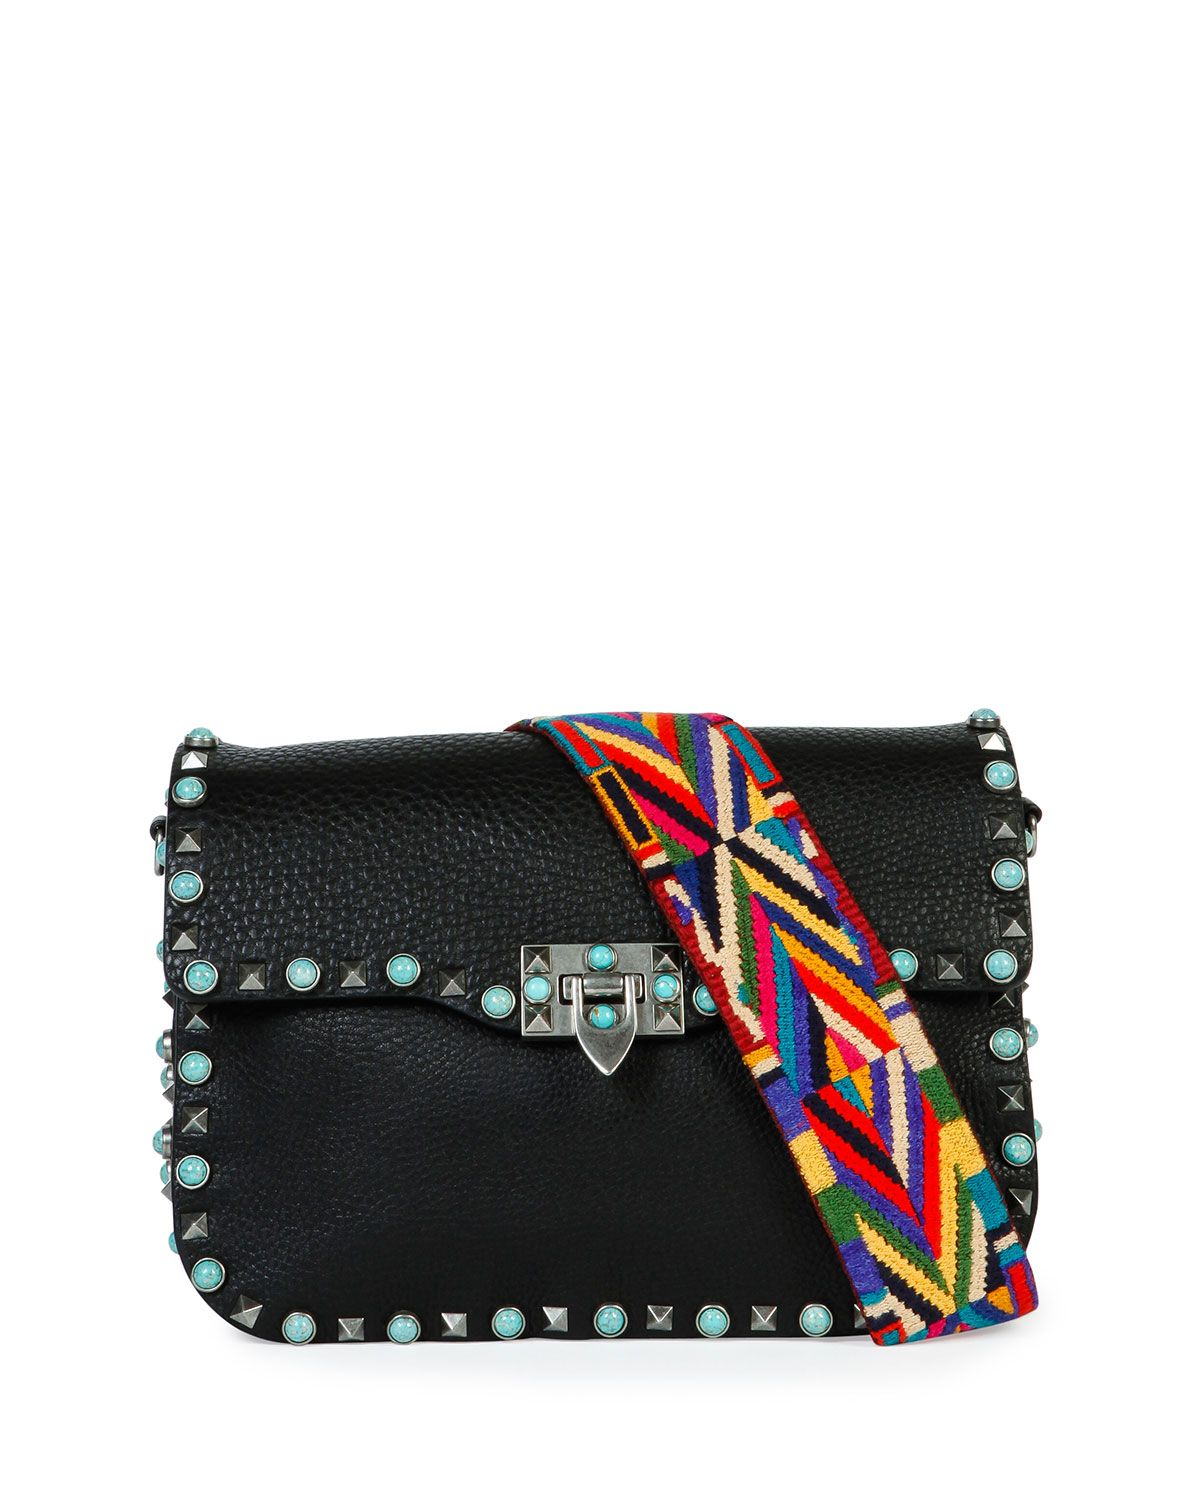 8e35bf068 Valentino Black with Turquoise Studs Rockstud Saddle Bag with Embroidered  Strap